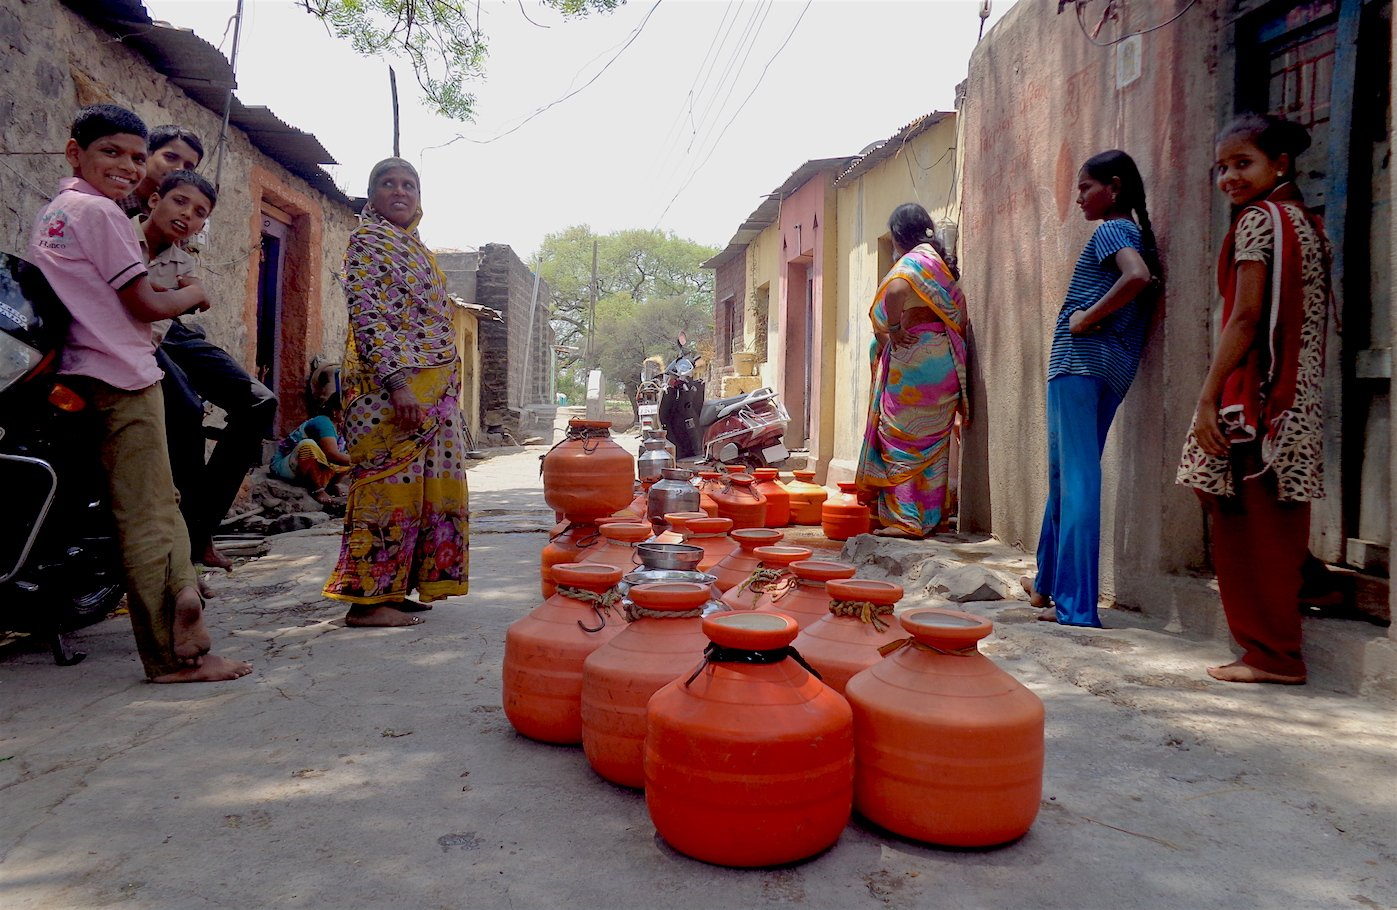 Up election 2017 behind sp congress alliance lies the open pursuit of a polarisating agenda firstpost - A Line Of Orange Pots Outside The House Of A Local Teacher Who Opens Up His Private Borewell To The Public A Few Times Each Week In Takwiki Village